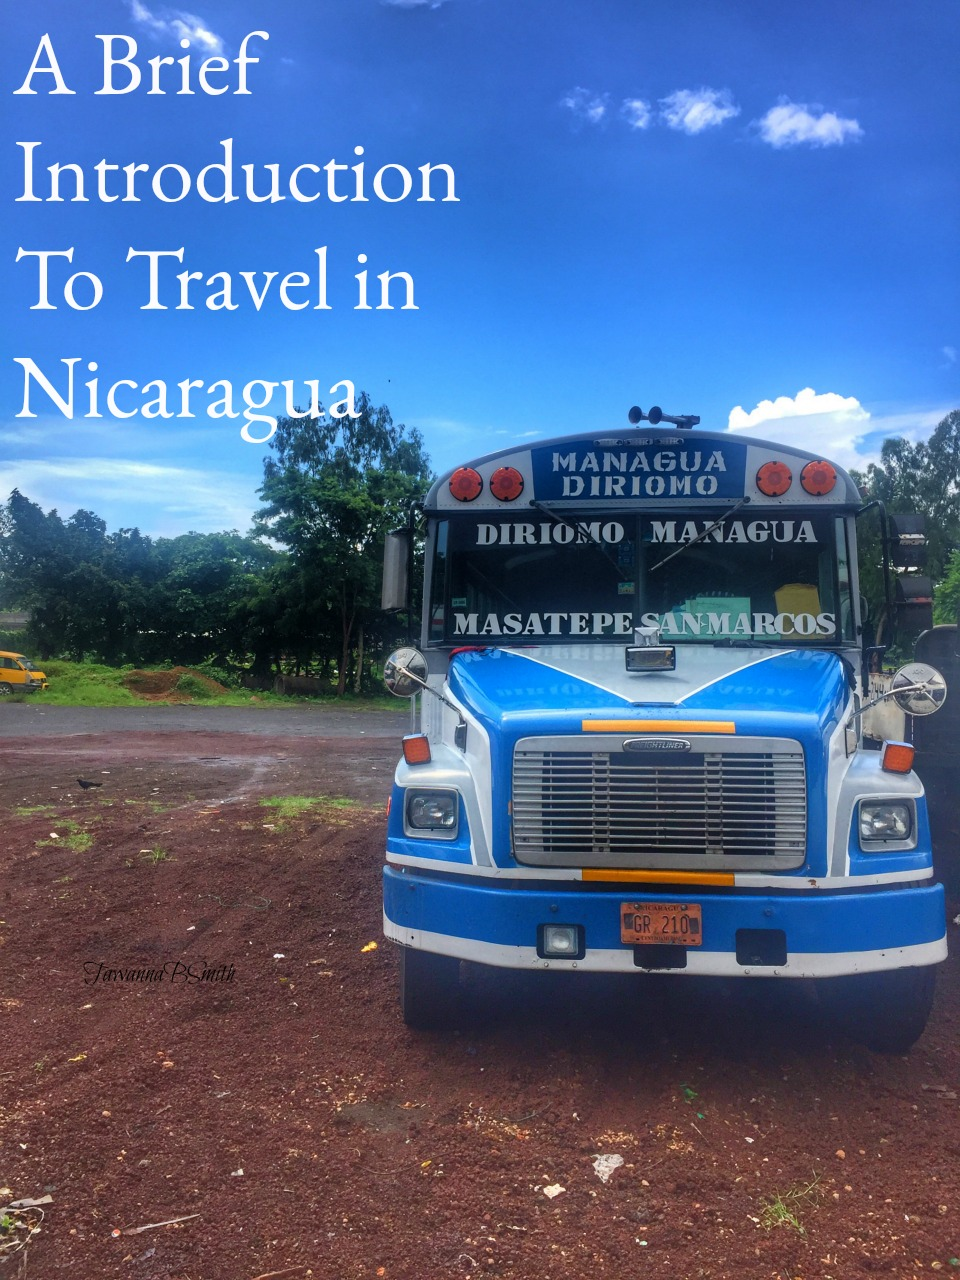 Introduction to Travel to Nicaragua